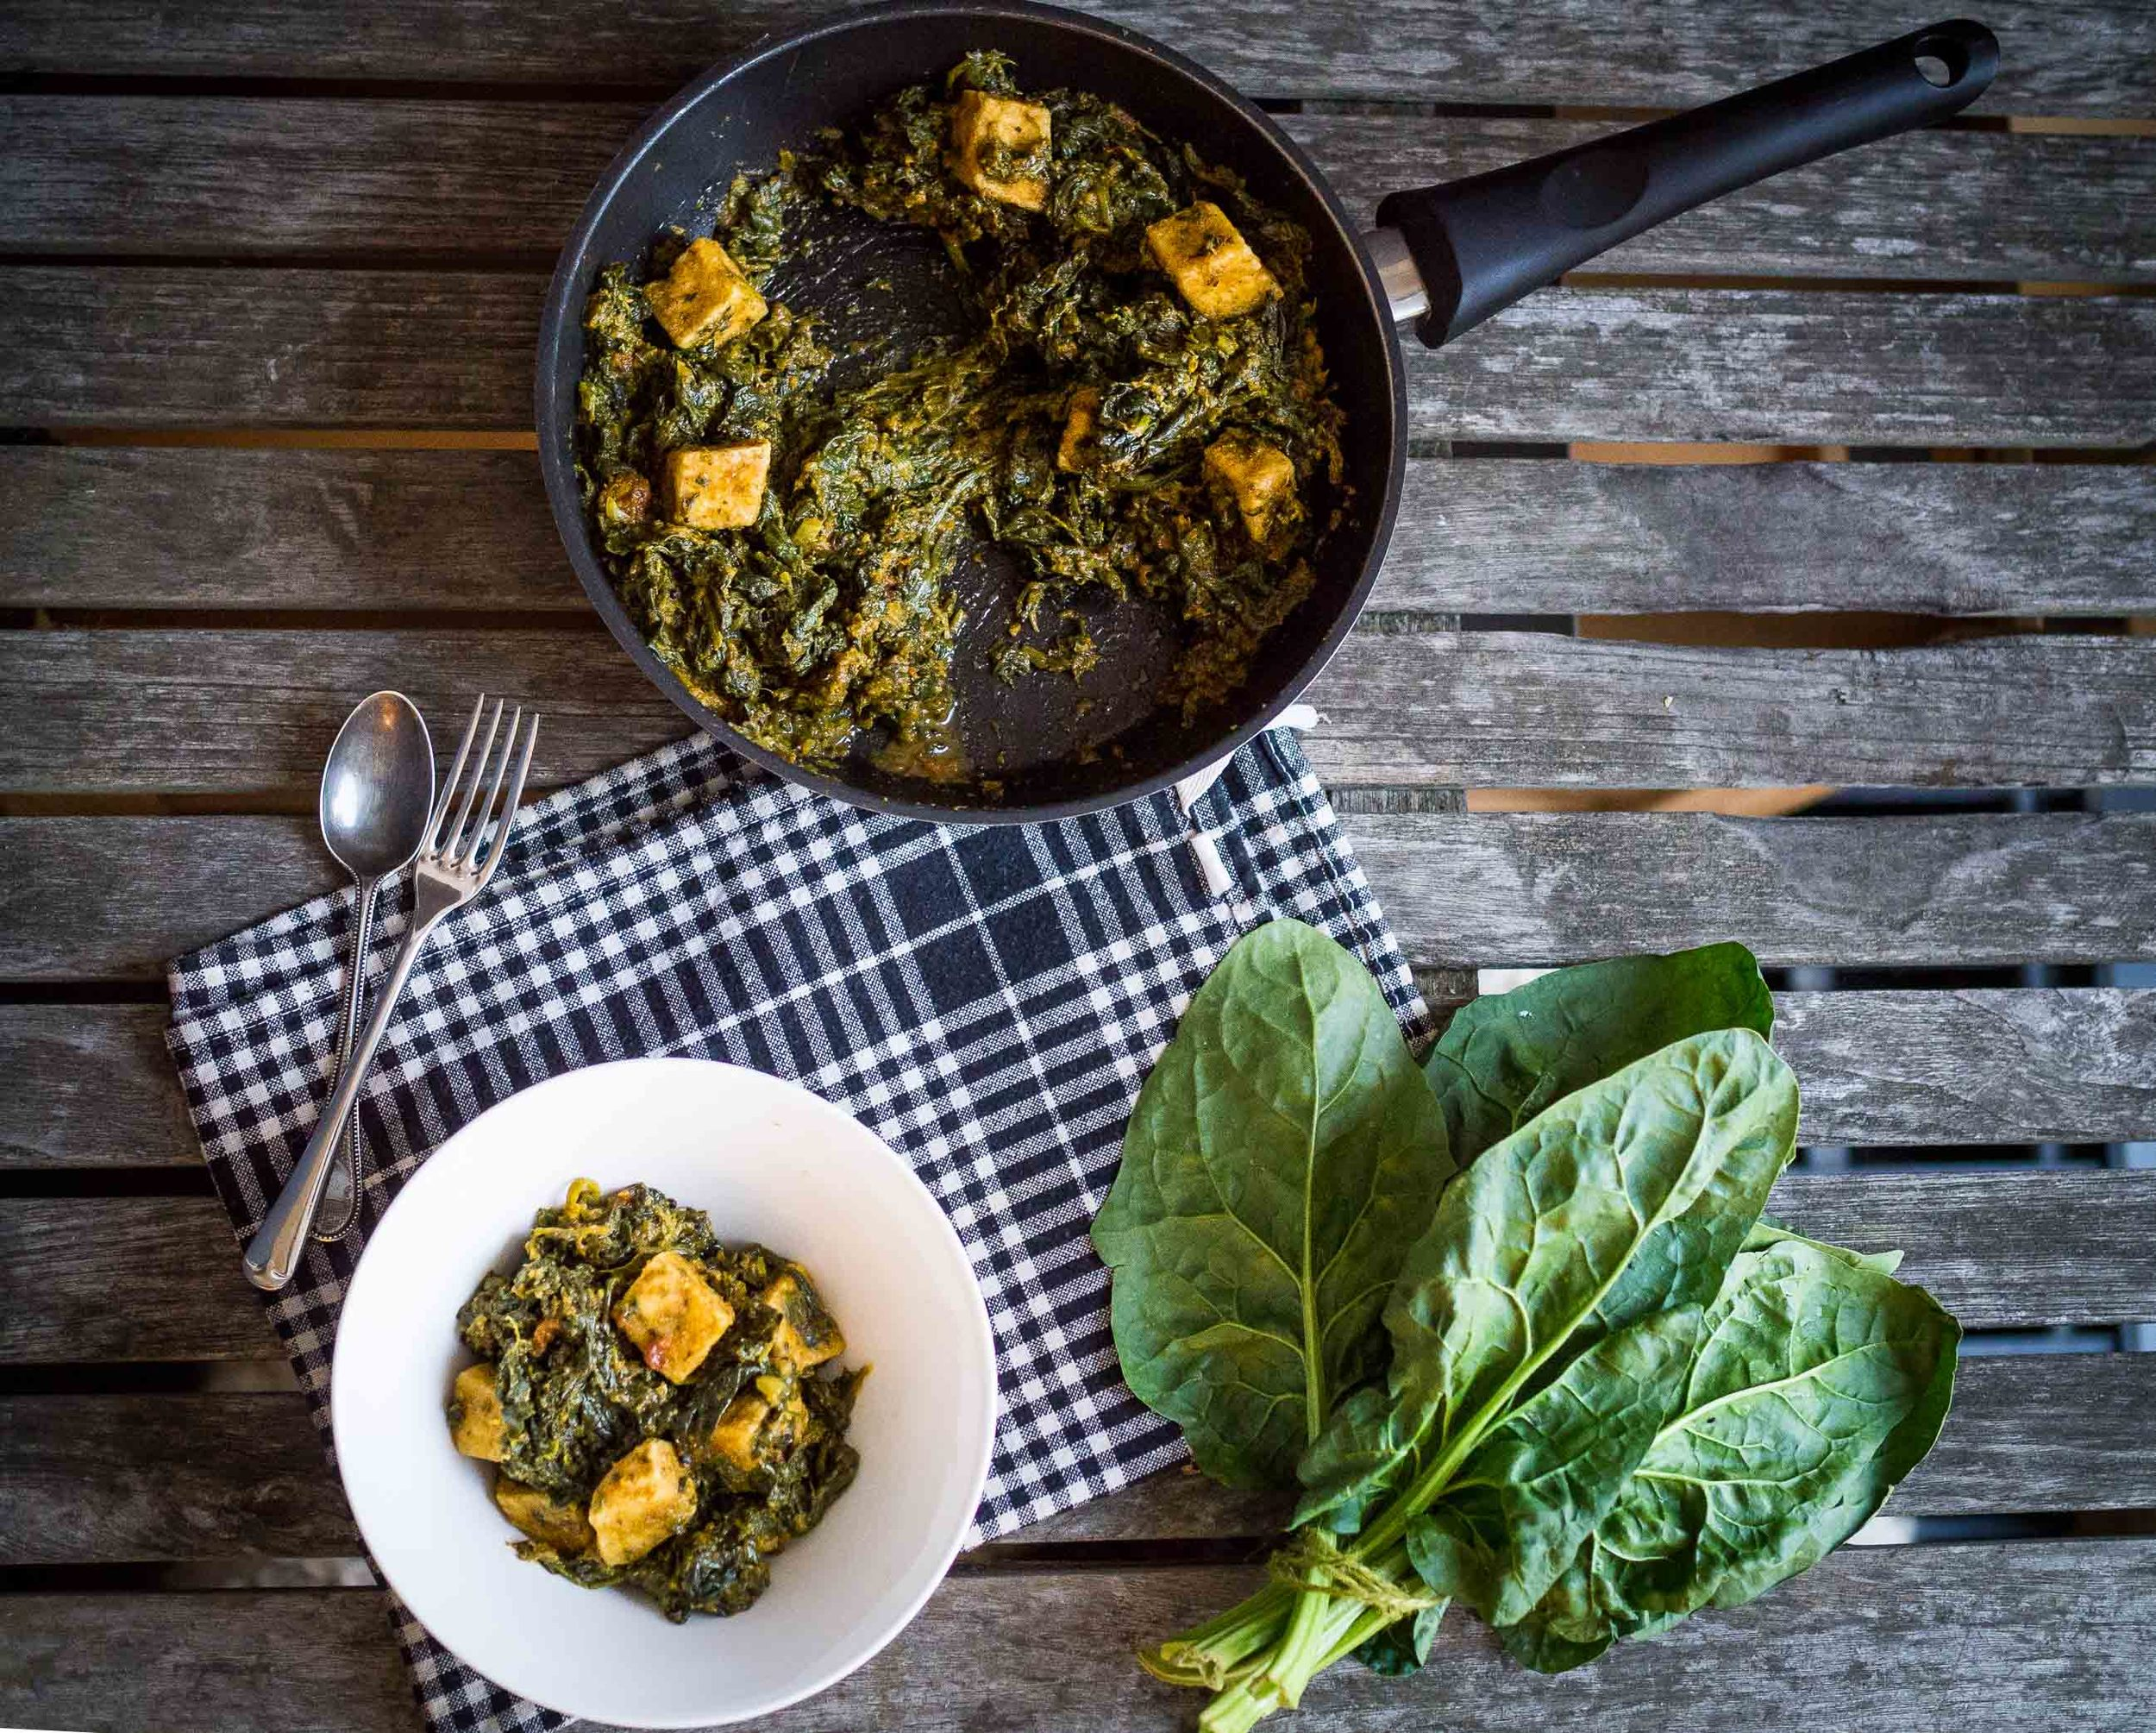 Bowl of Saag Tofu with spinach | Saag Tofu | Indian Food | DiscoverDelicious